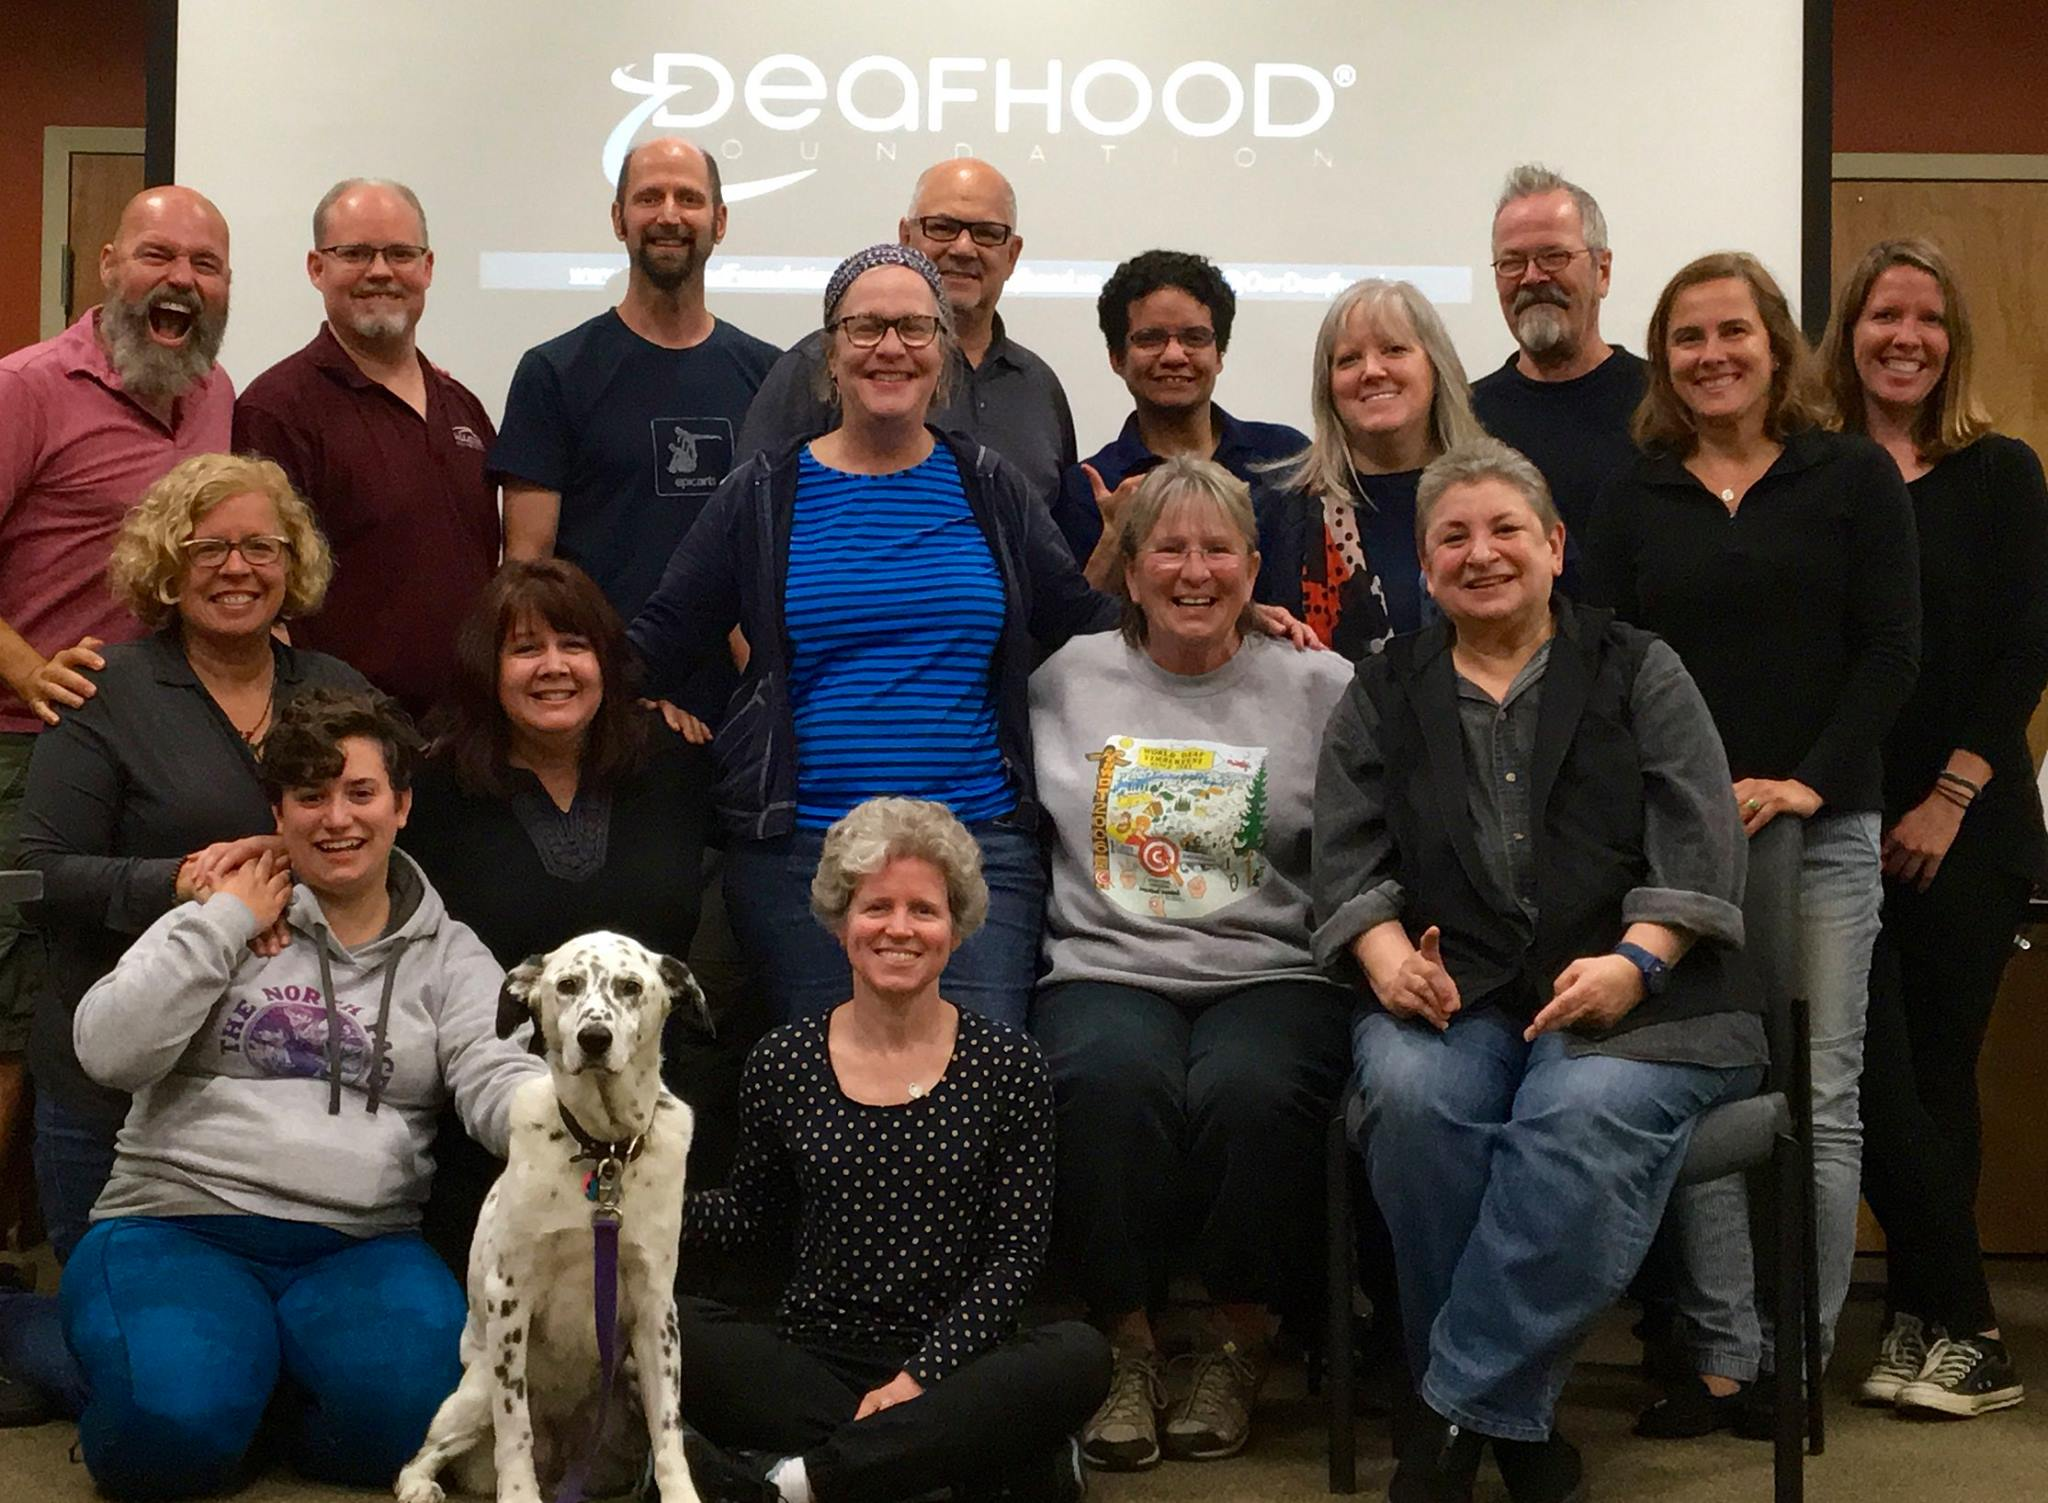 Deafhood 201- Seattle, WA  May 2016